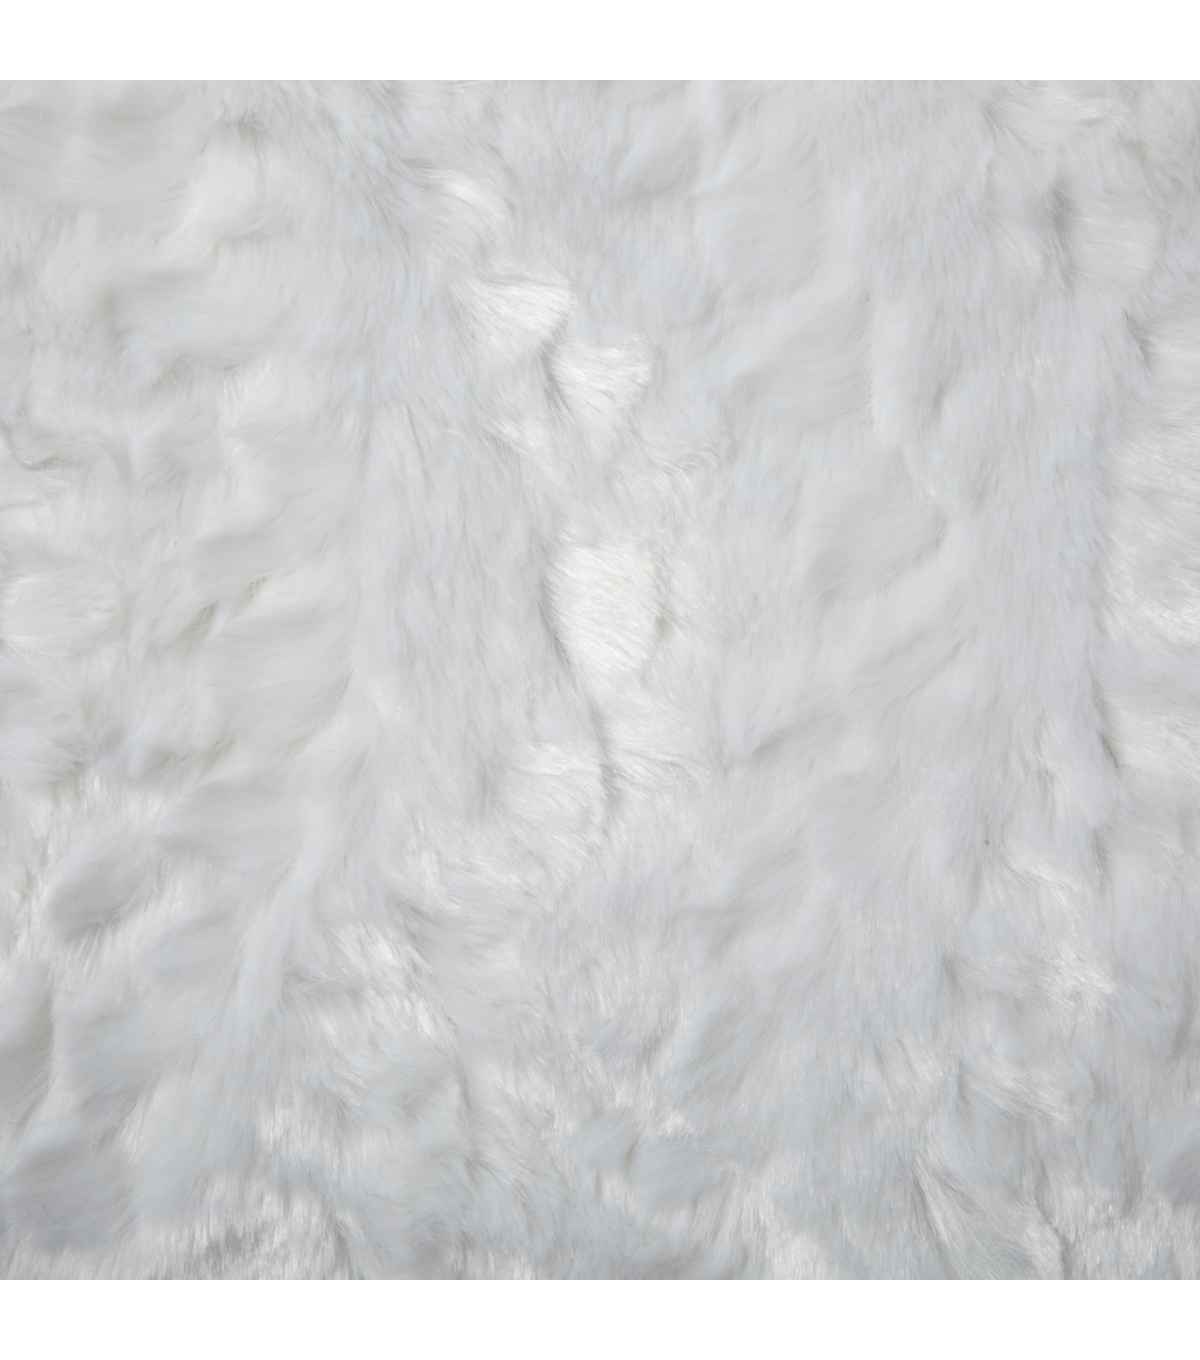 Entertainment Memorabilia Imitation Small Rabbit Fur Artificial Fur Fashion Womens Toy Pillow Bag Fabric